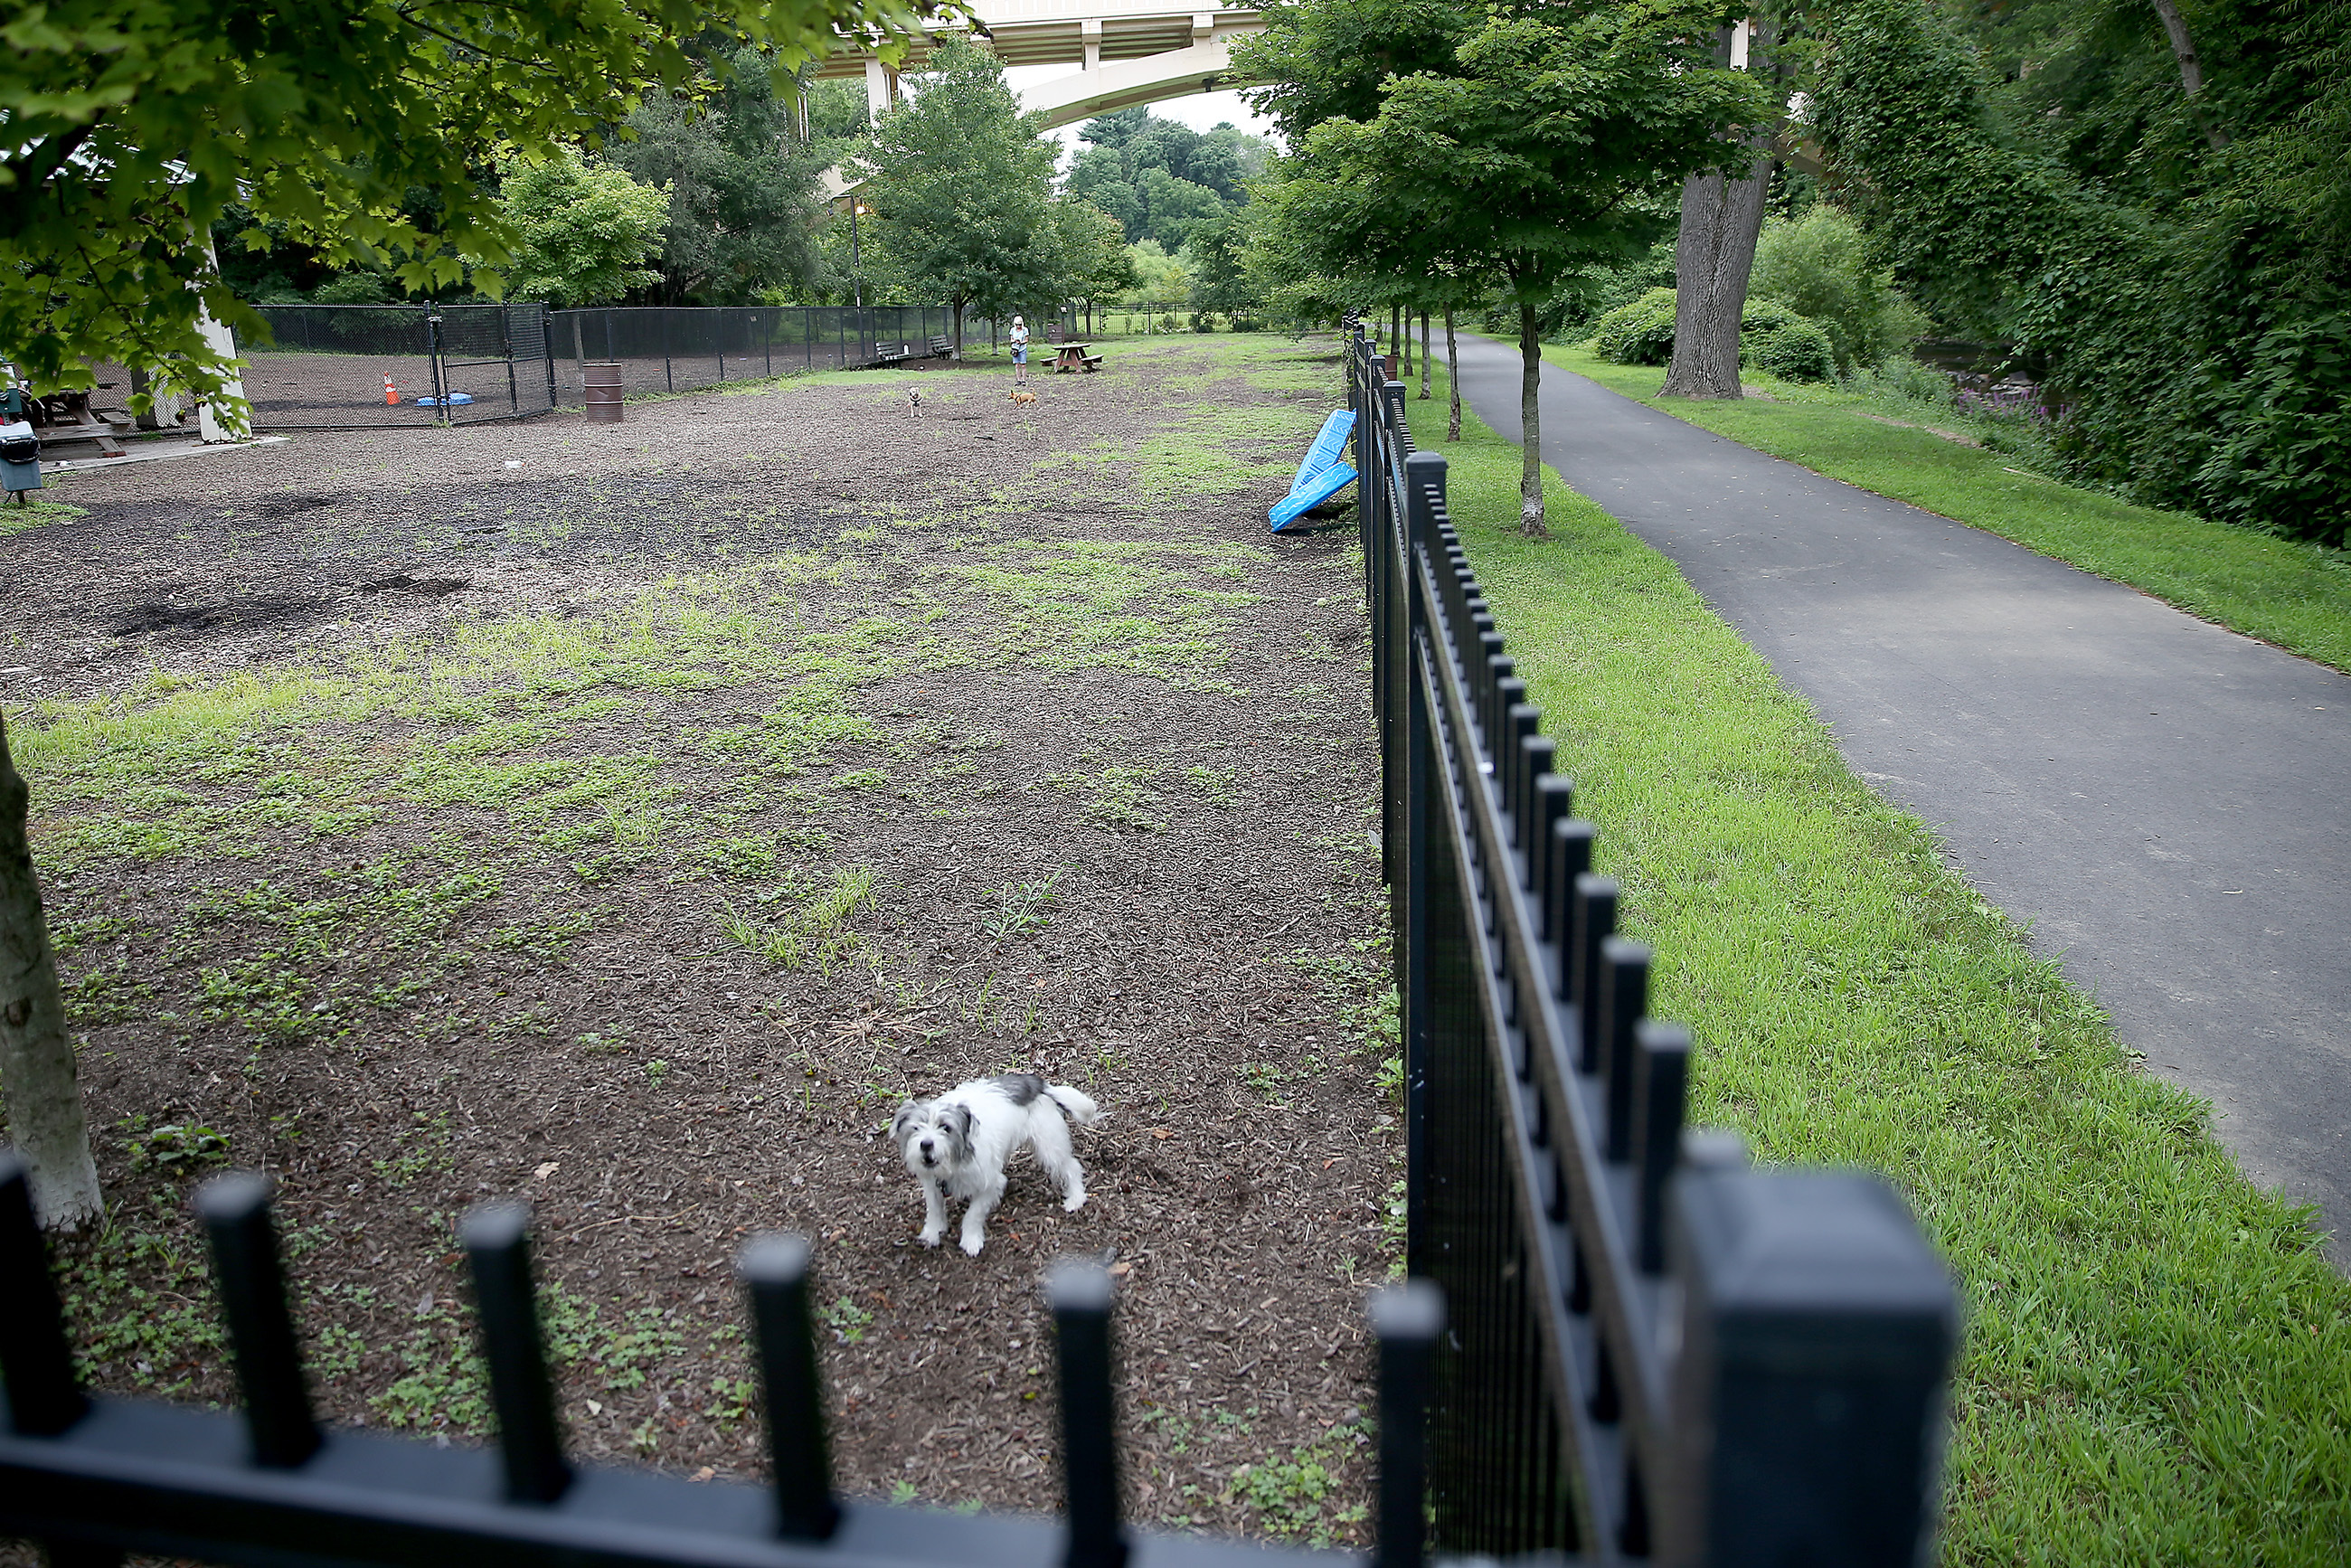 A dog barks in the Kent Dog Park along the Darby Creek Trail on July 30, 2018 in Upper Darby.